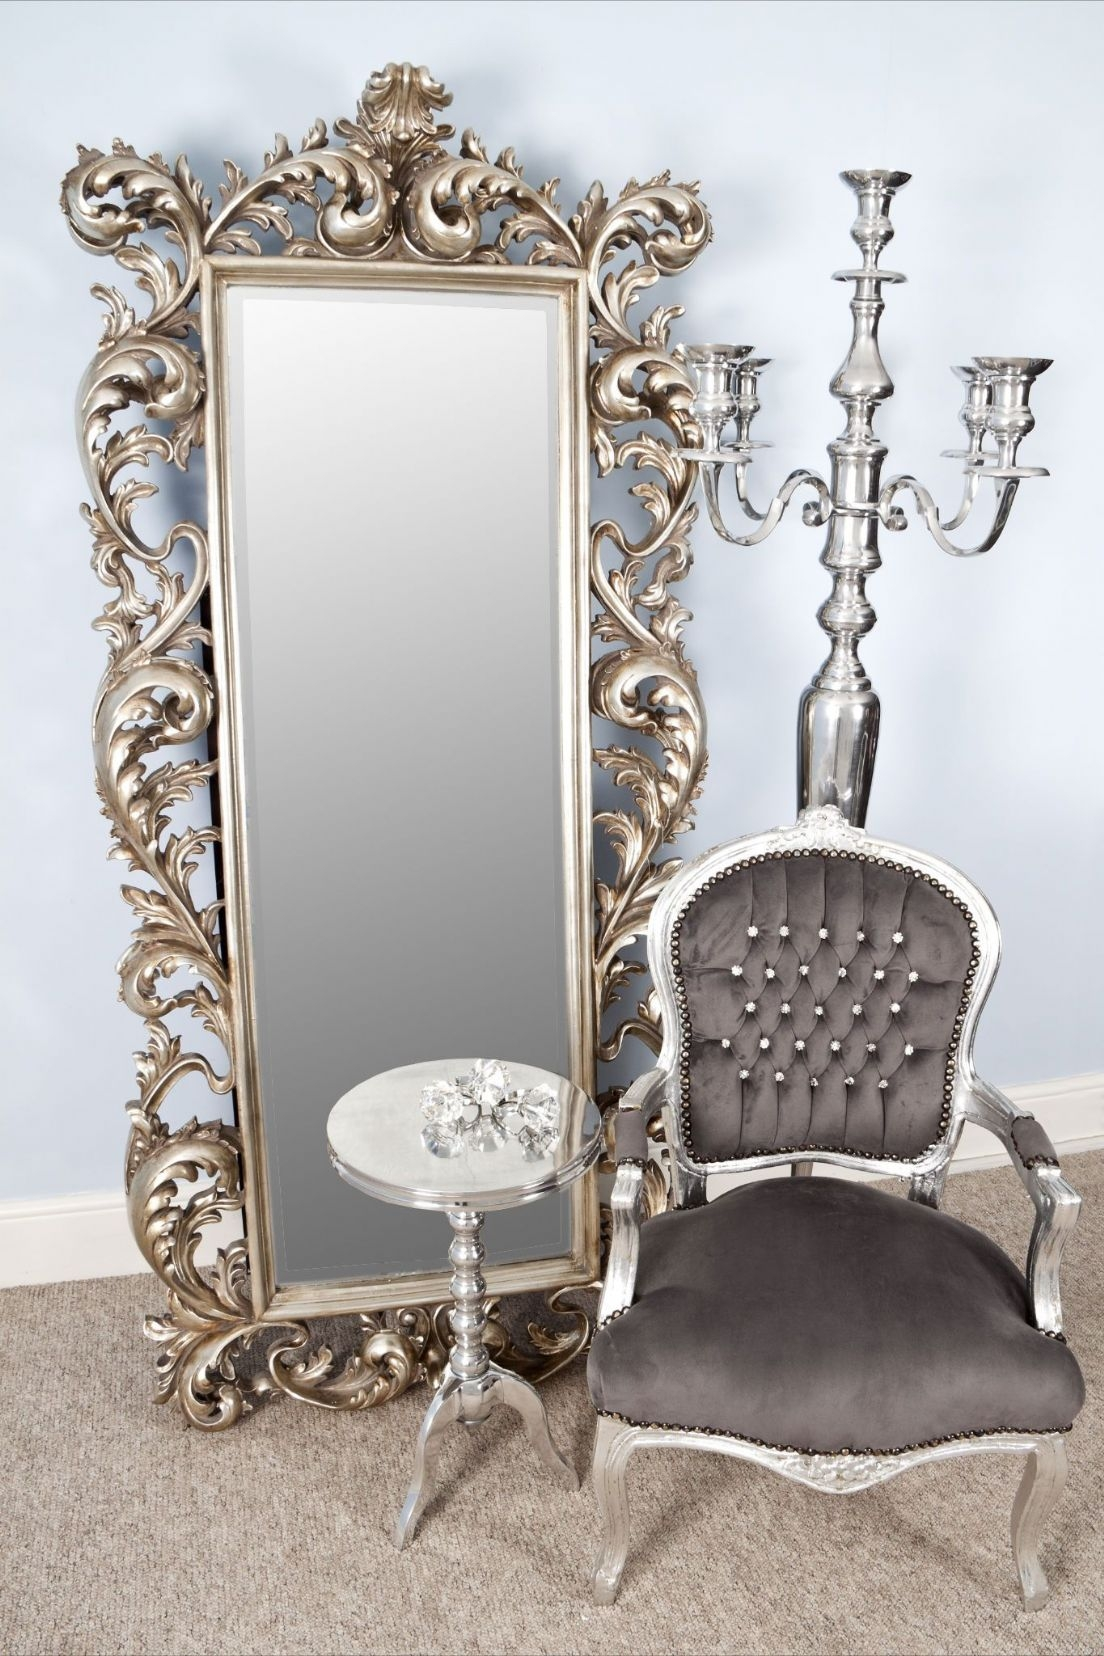 Bedroom Appealing Oversized Mirrors For Home Decoration Ideas Throughout Large Old Mirrors For Sale (Image 3 of 15)